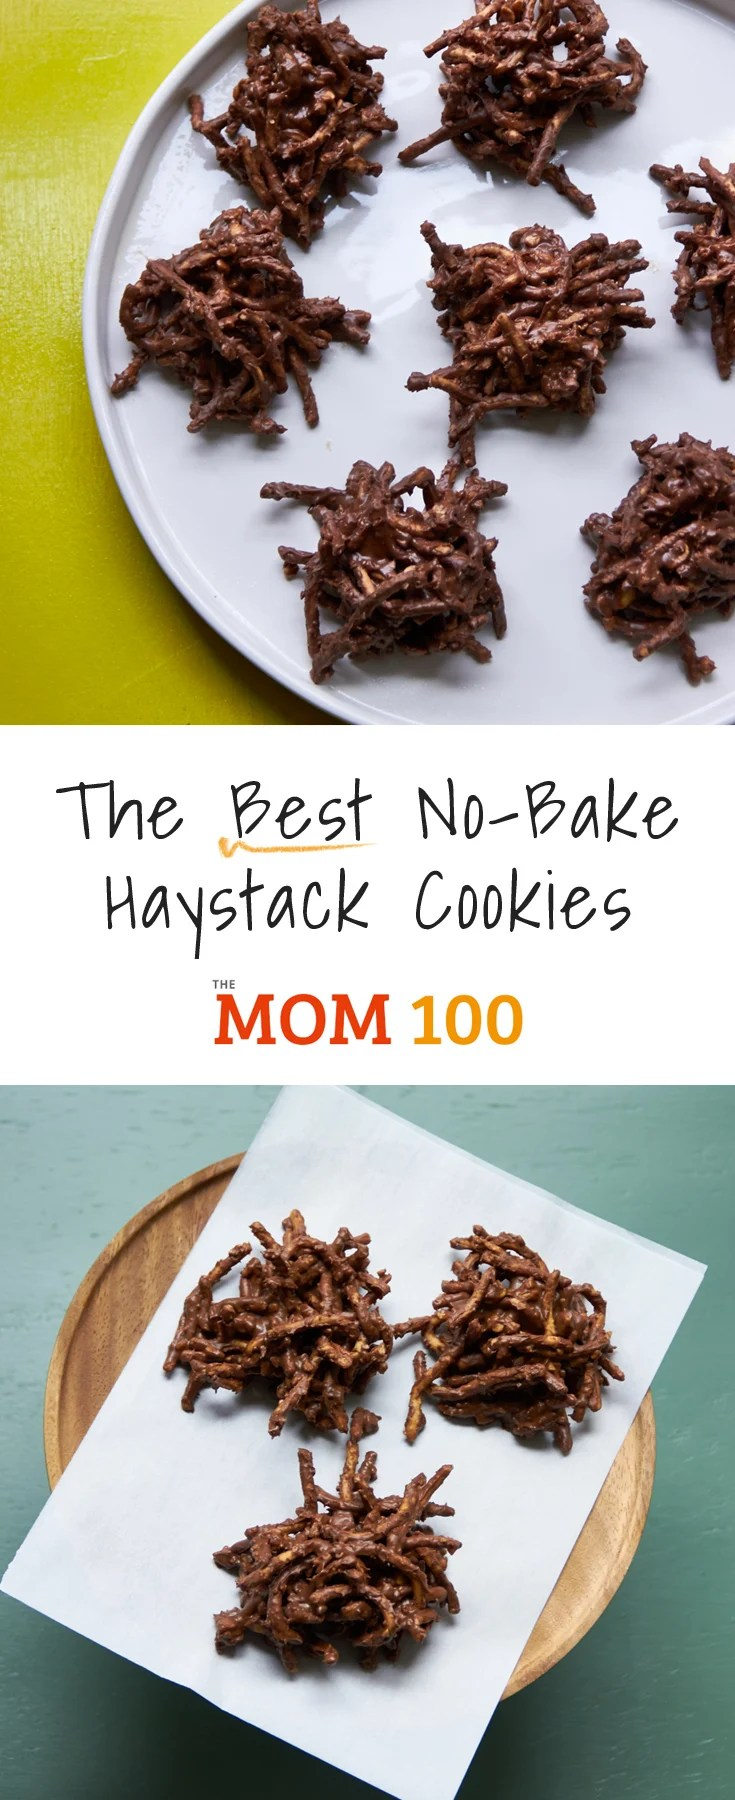 The Best No-Bake Haystack Cookies.  This amazing classic has a combination of butterscotch and chocolate chips, PLUS peanut butter and crushed peanuts.